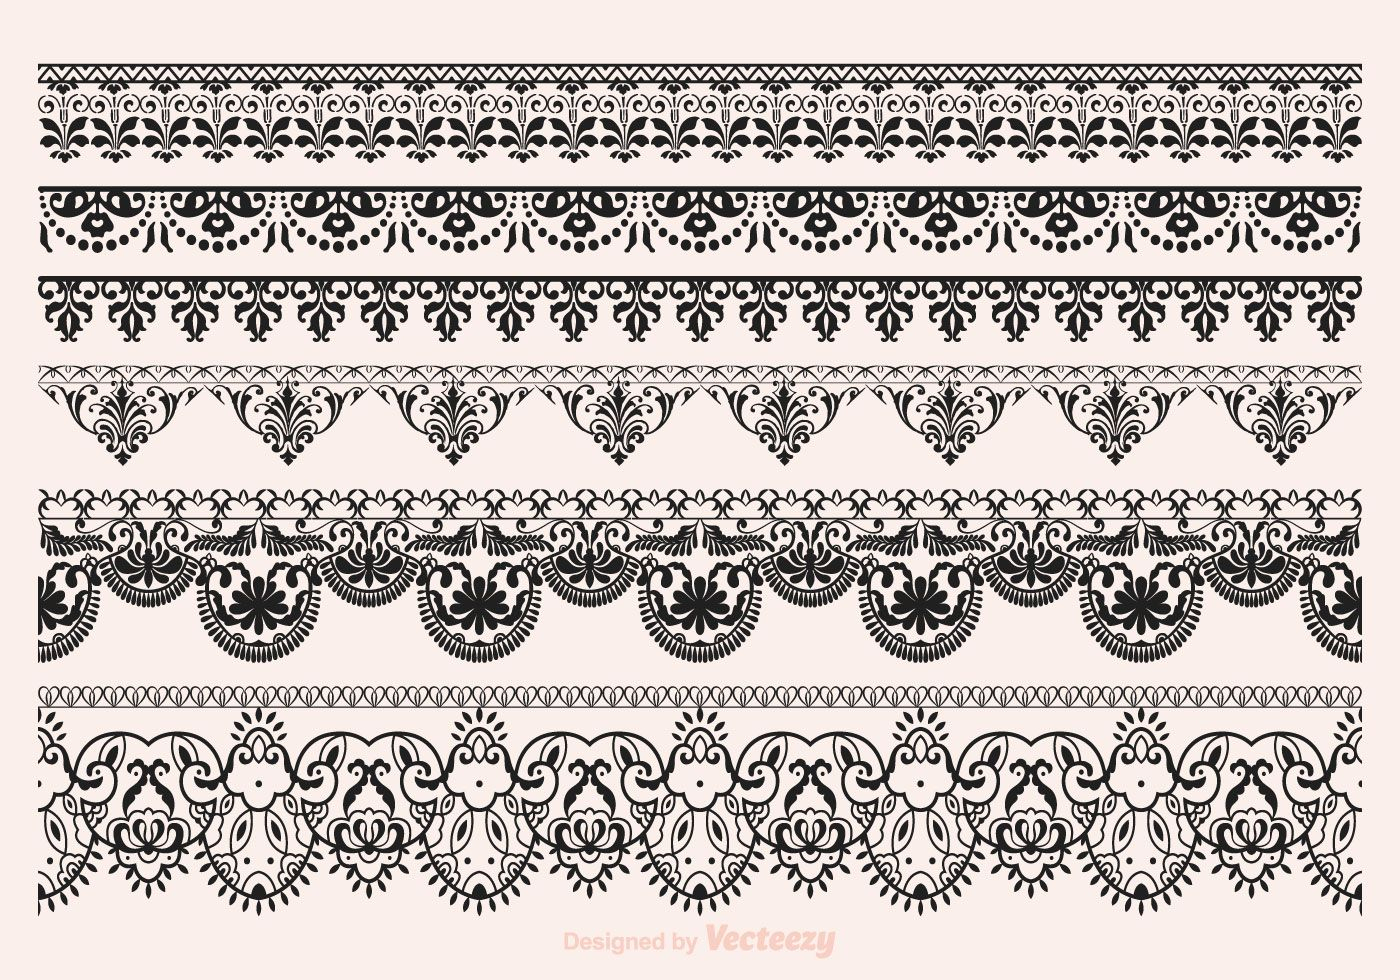 Free Vector Lace Vector Borders | Paint-Plpatt/mud 25 | Pinterest - Free Printable Lace Stencil